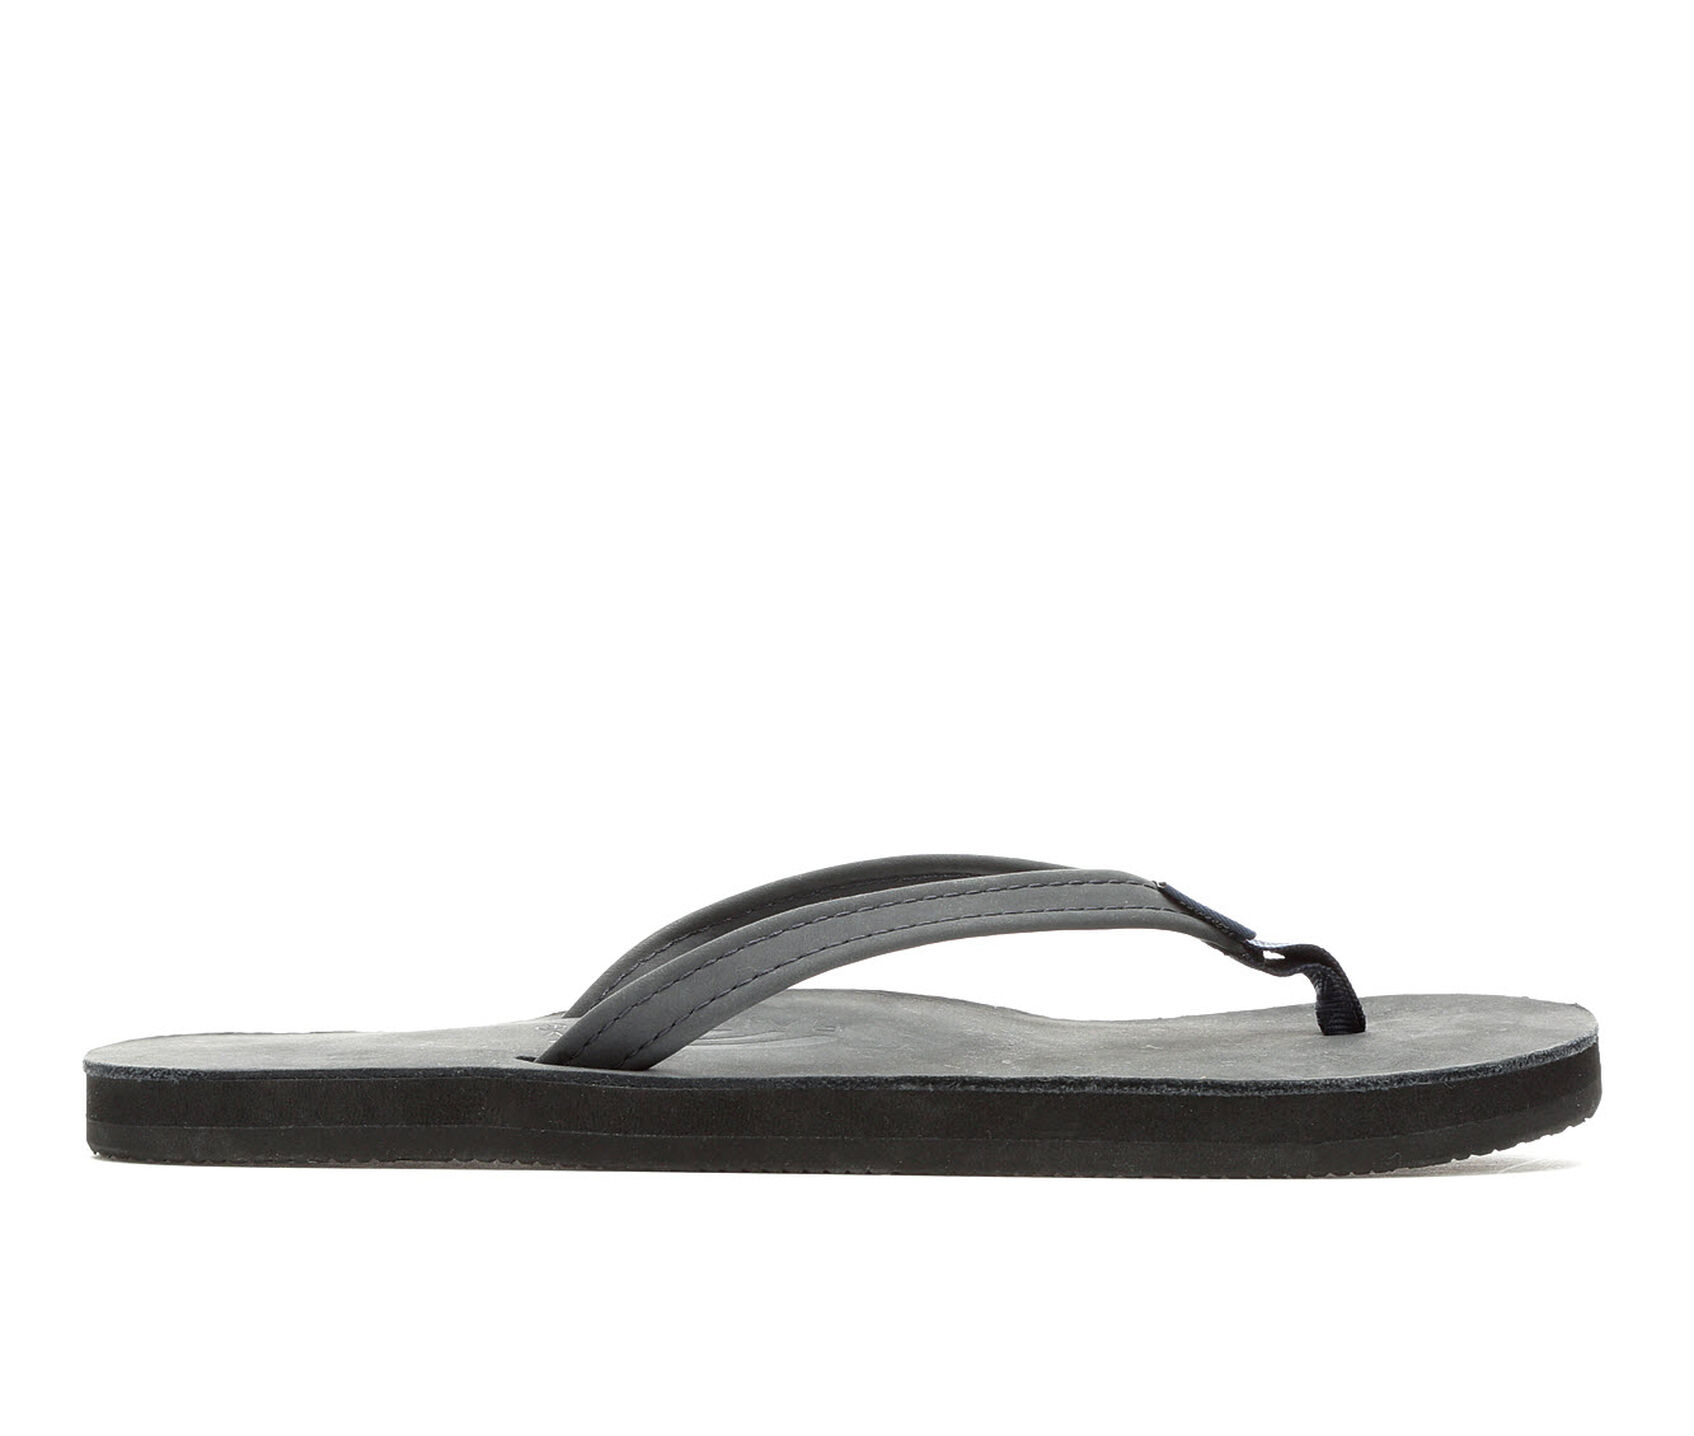 62db8a3fa438 ... Rainbow Sandals Single Layer Premier Leather -301ALTSN Flip-Flops.  Previous